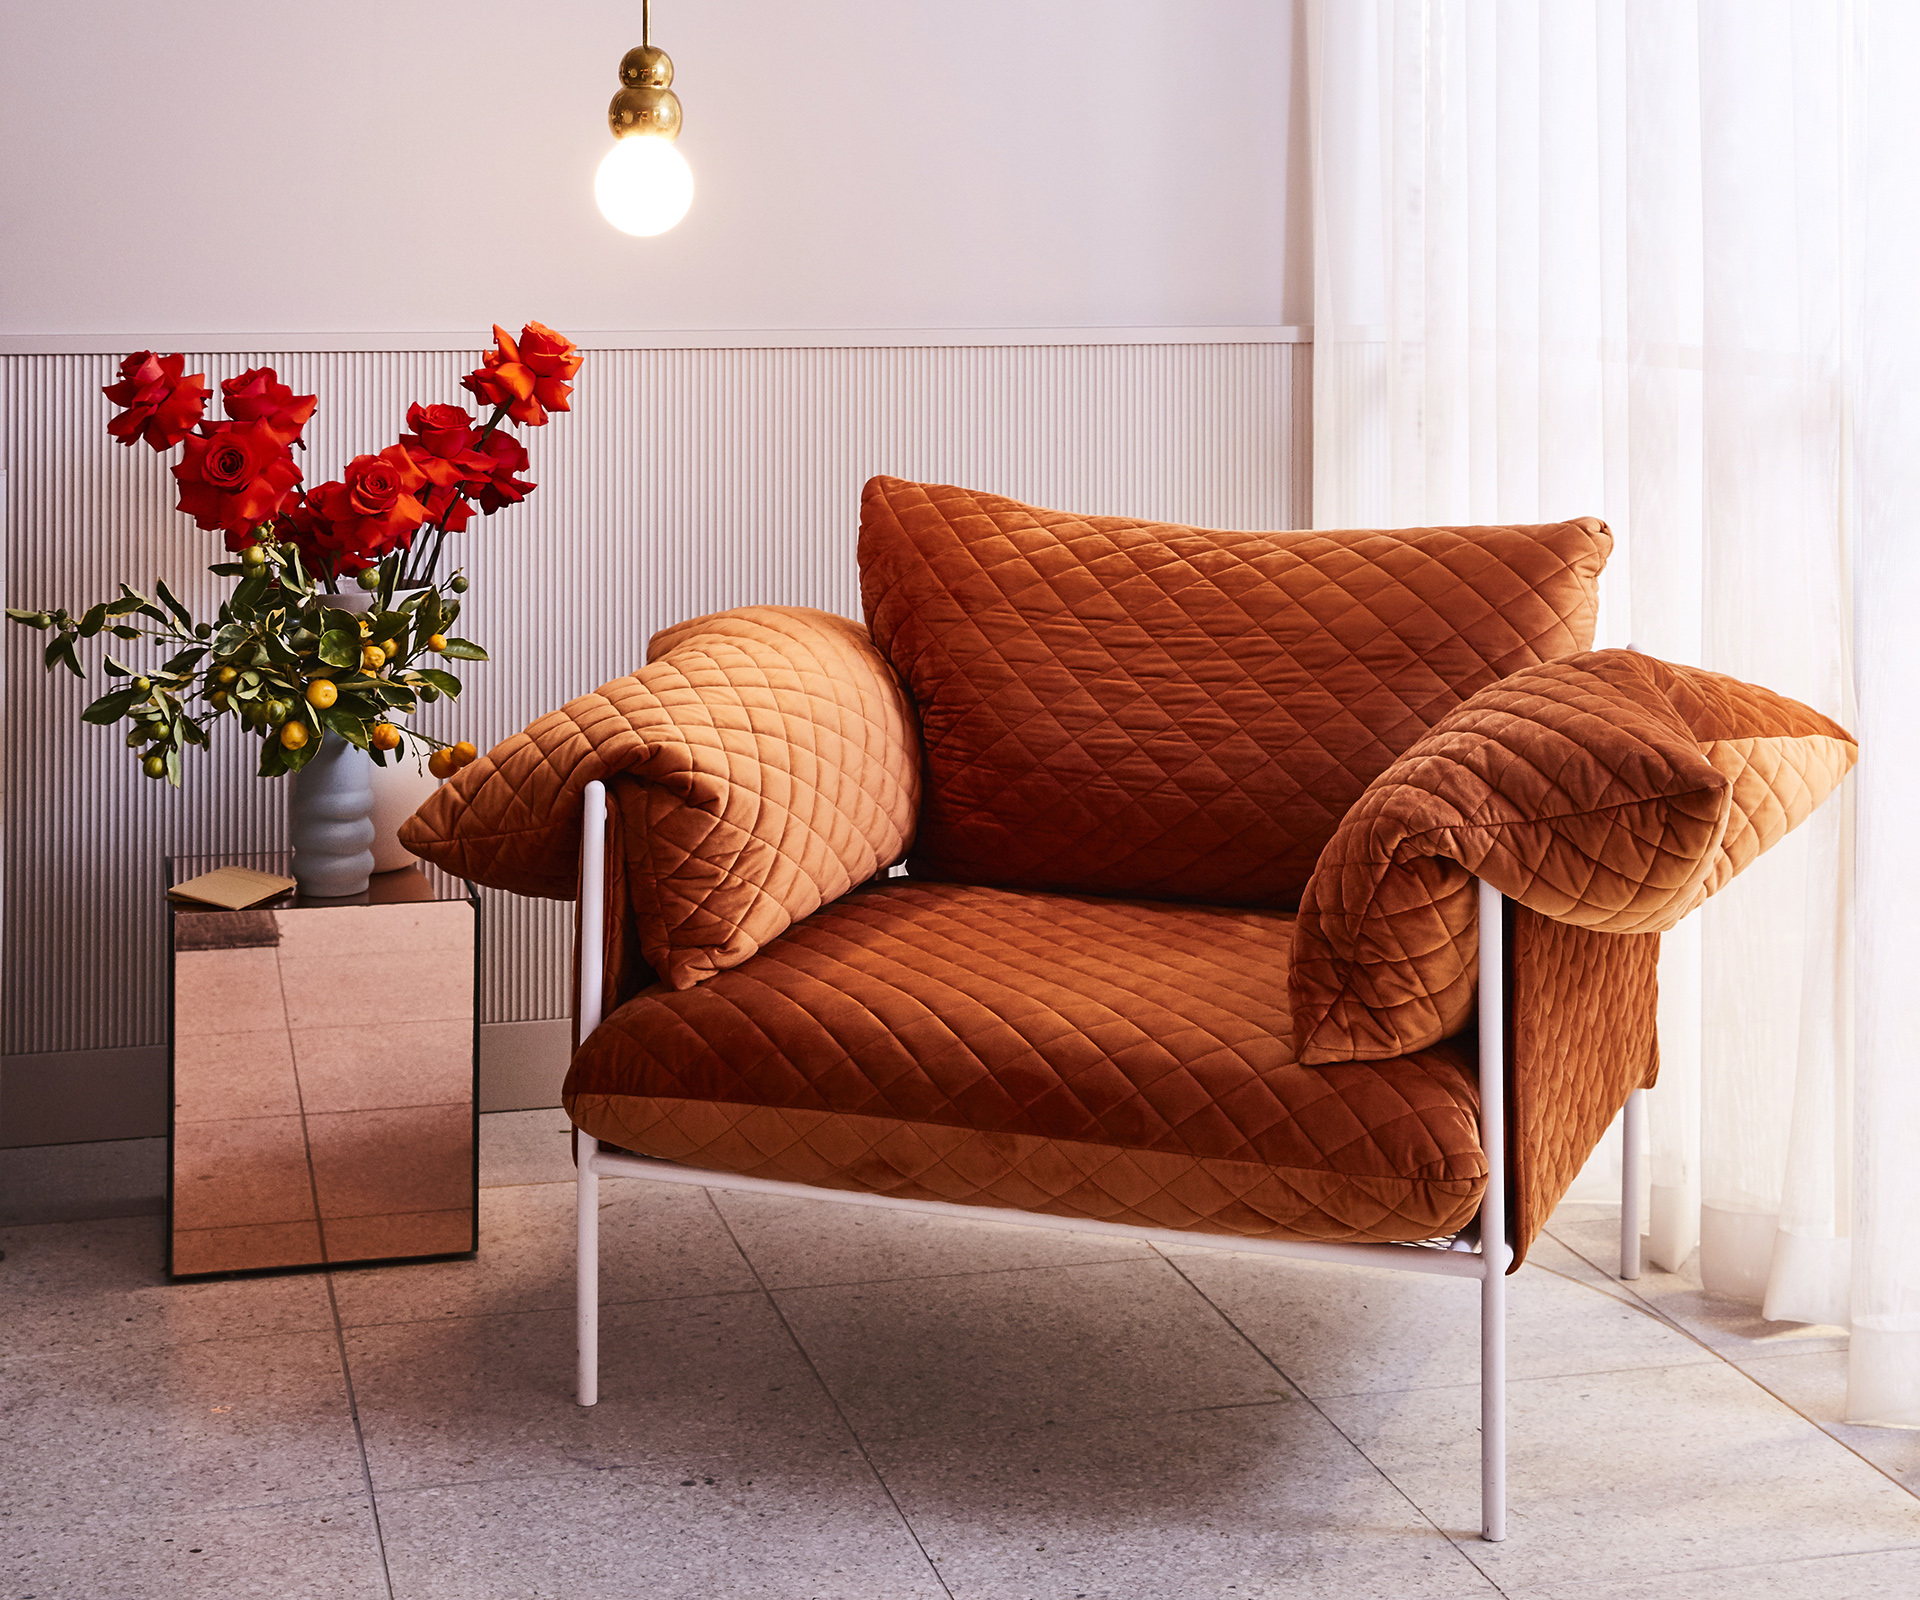 14 statement armchairs we want to curl up in | real living